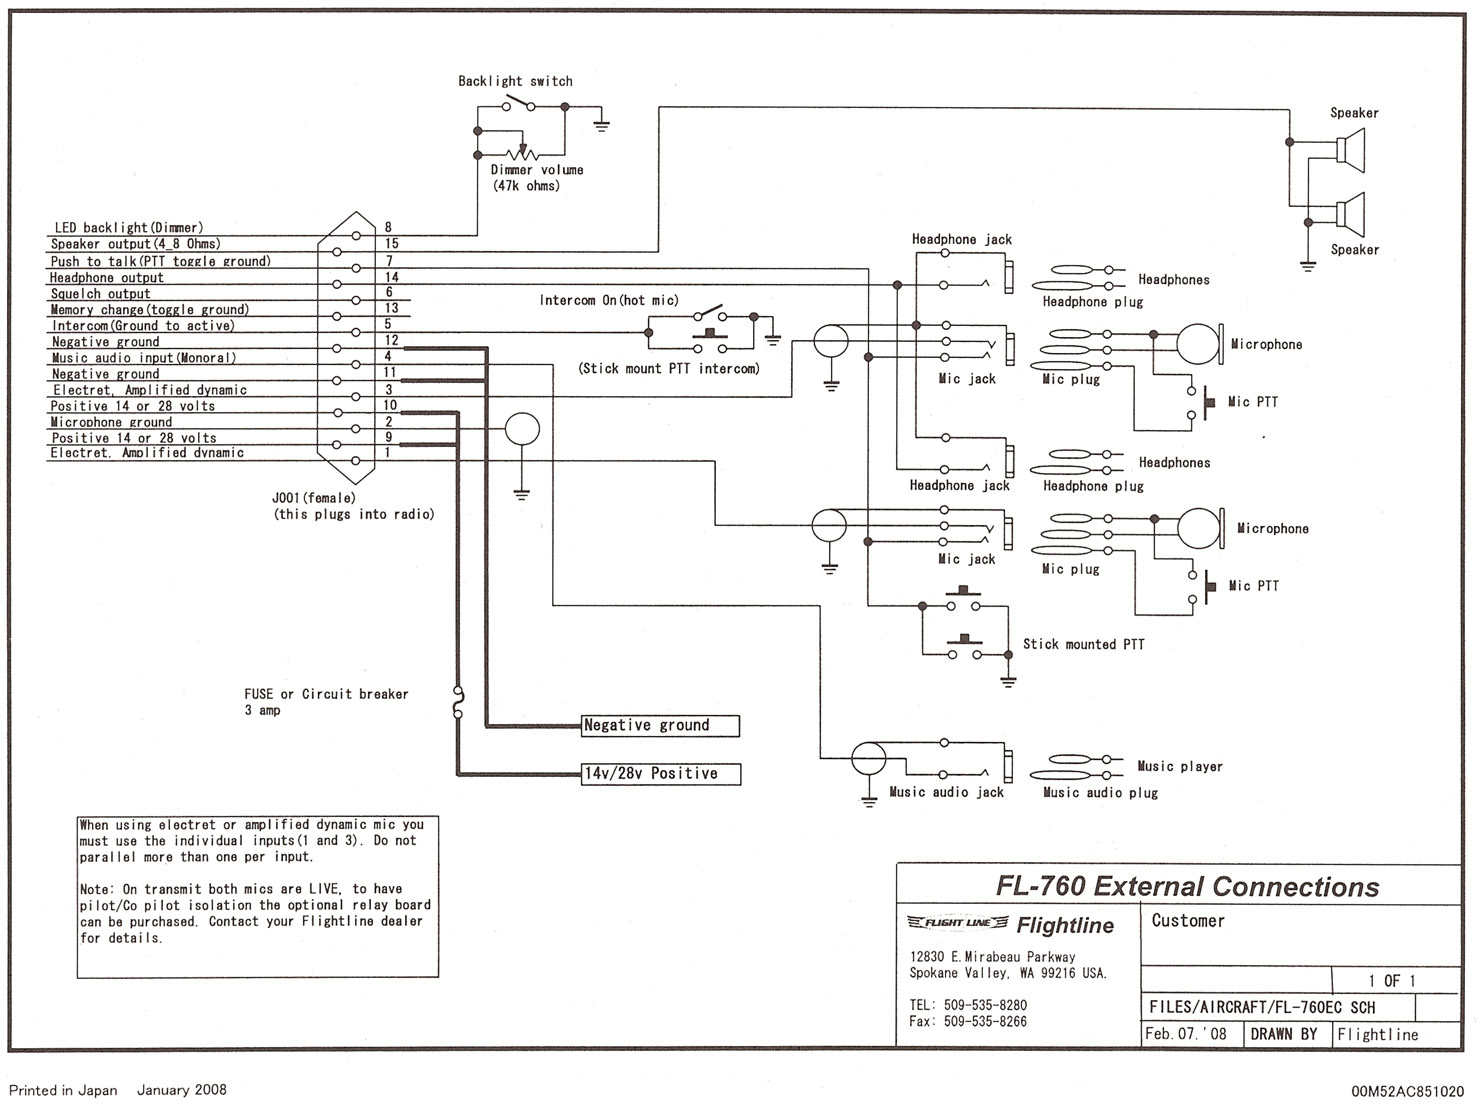 fl_760_wiring_diagram_934?resize\=665%2C499 fl 760 wiring diagram ford diagrams schematics \u2022 edmiracle co narco com 11a wiring diagram at honlapkeszites.co